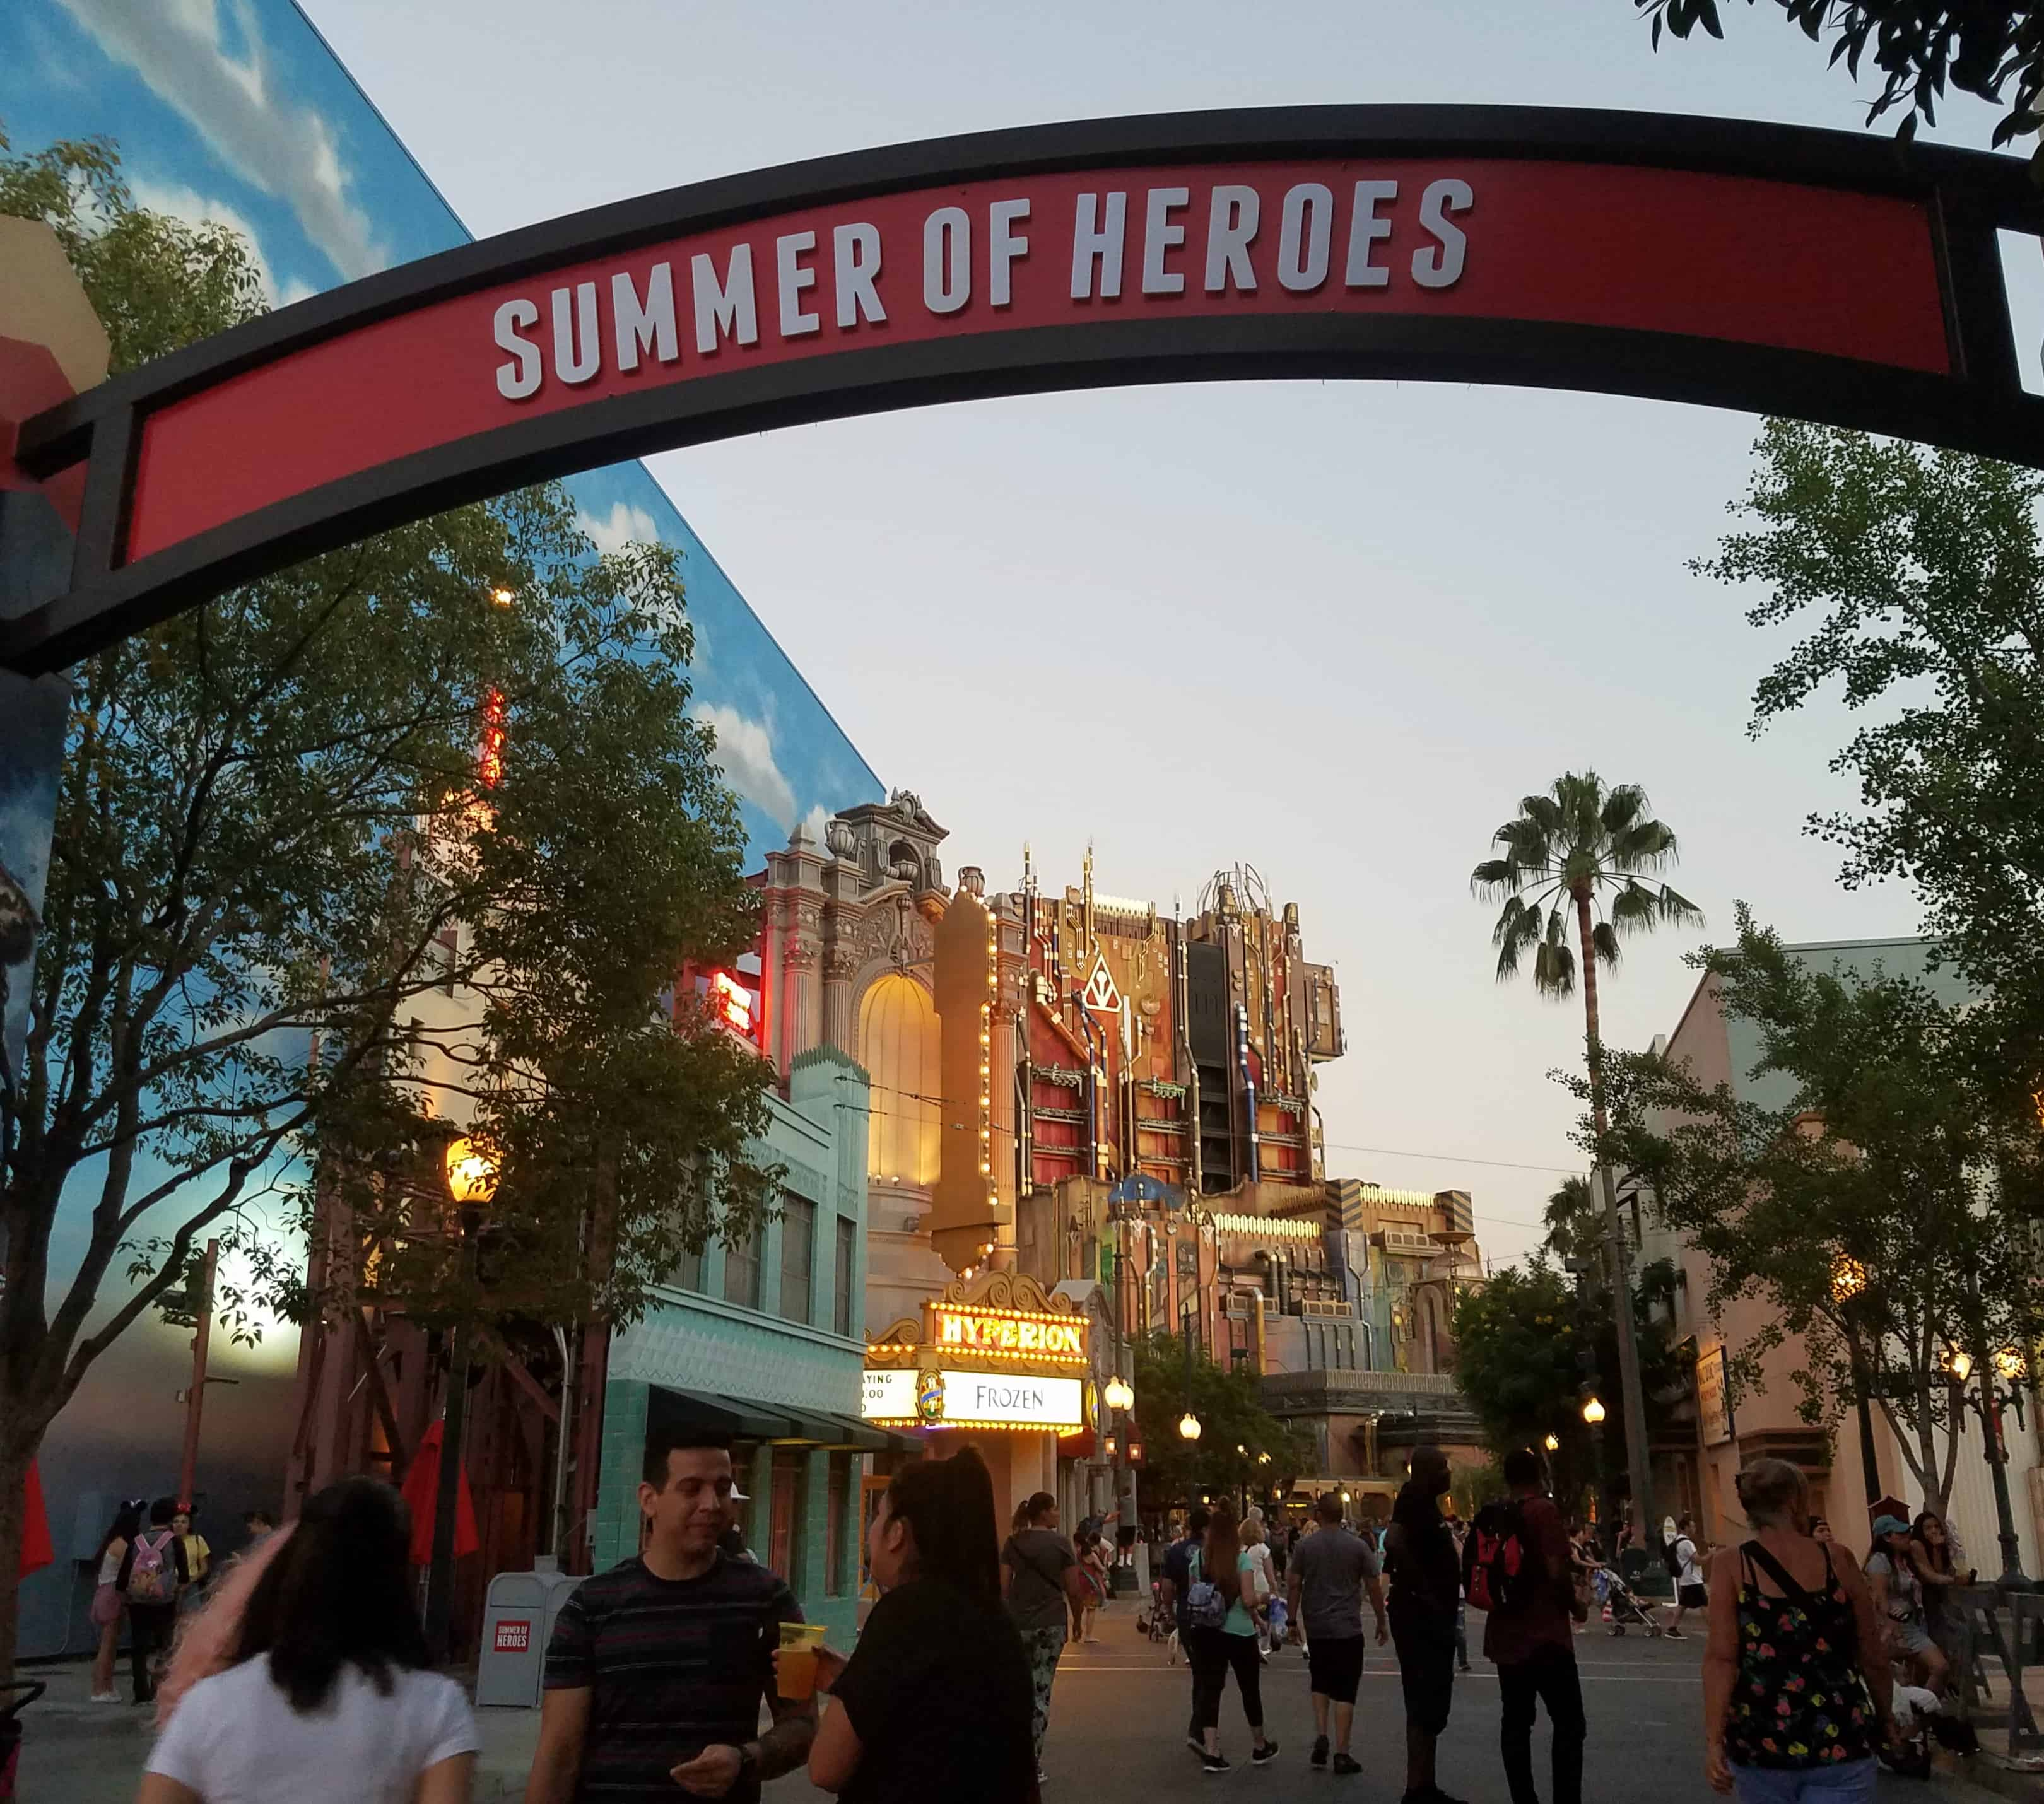 While at D23 Expo - Disneyland and Disney California Adventure - Summer of Heroes